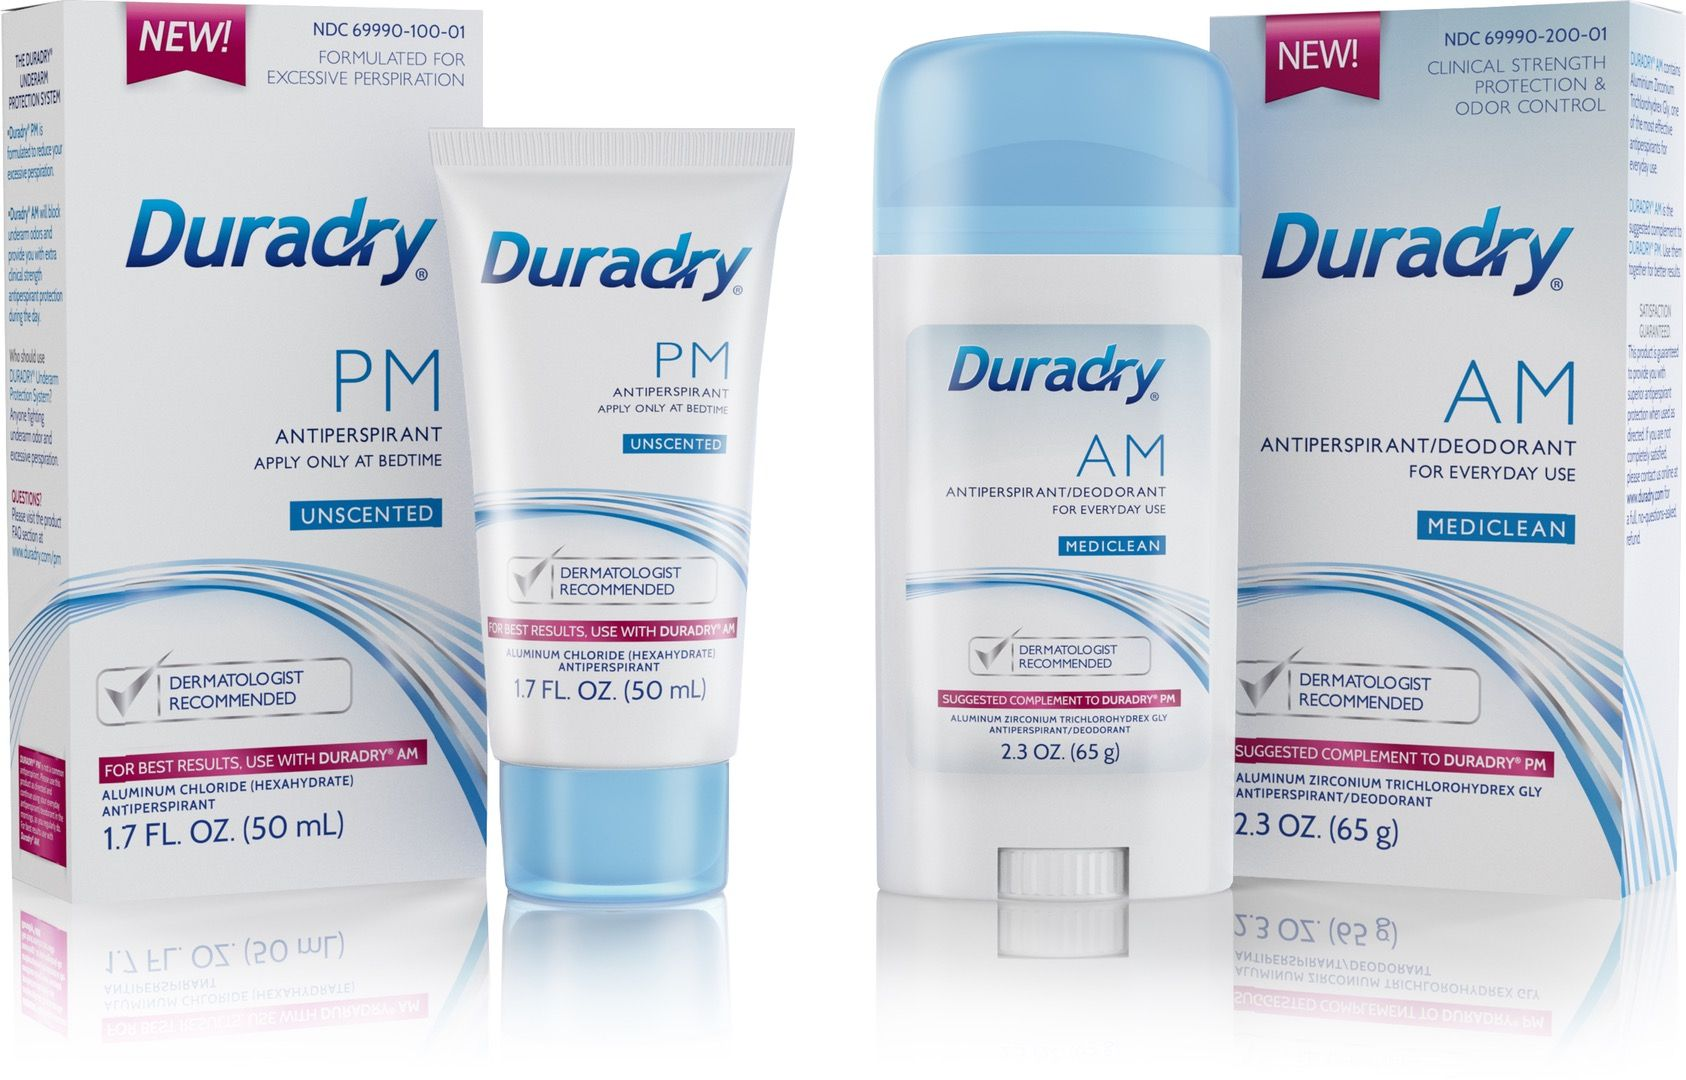 duradry-underarm-protection-system-1.jpg